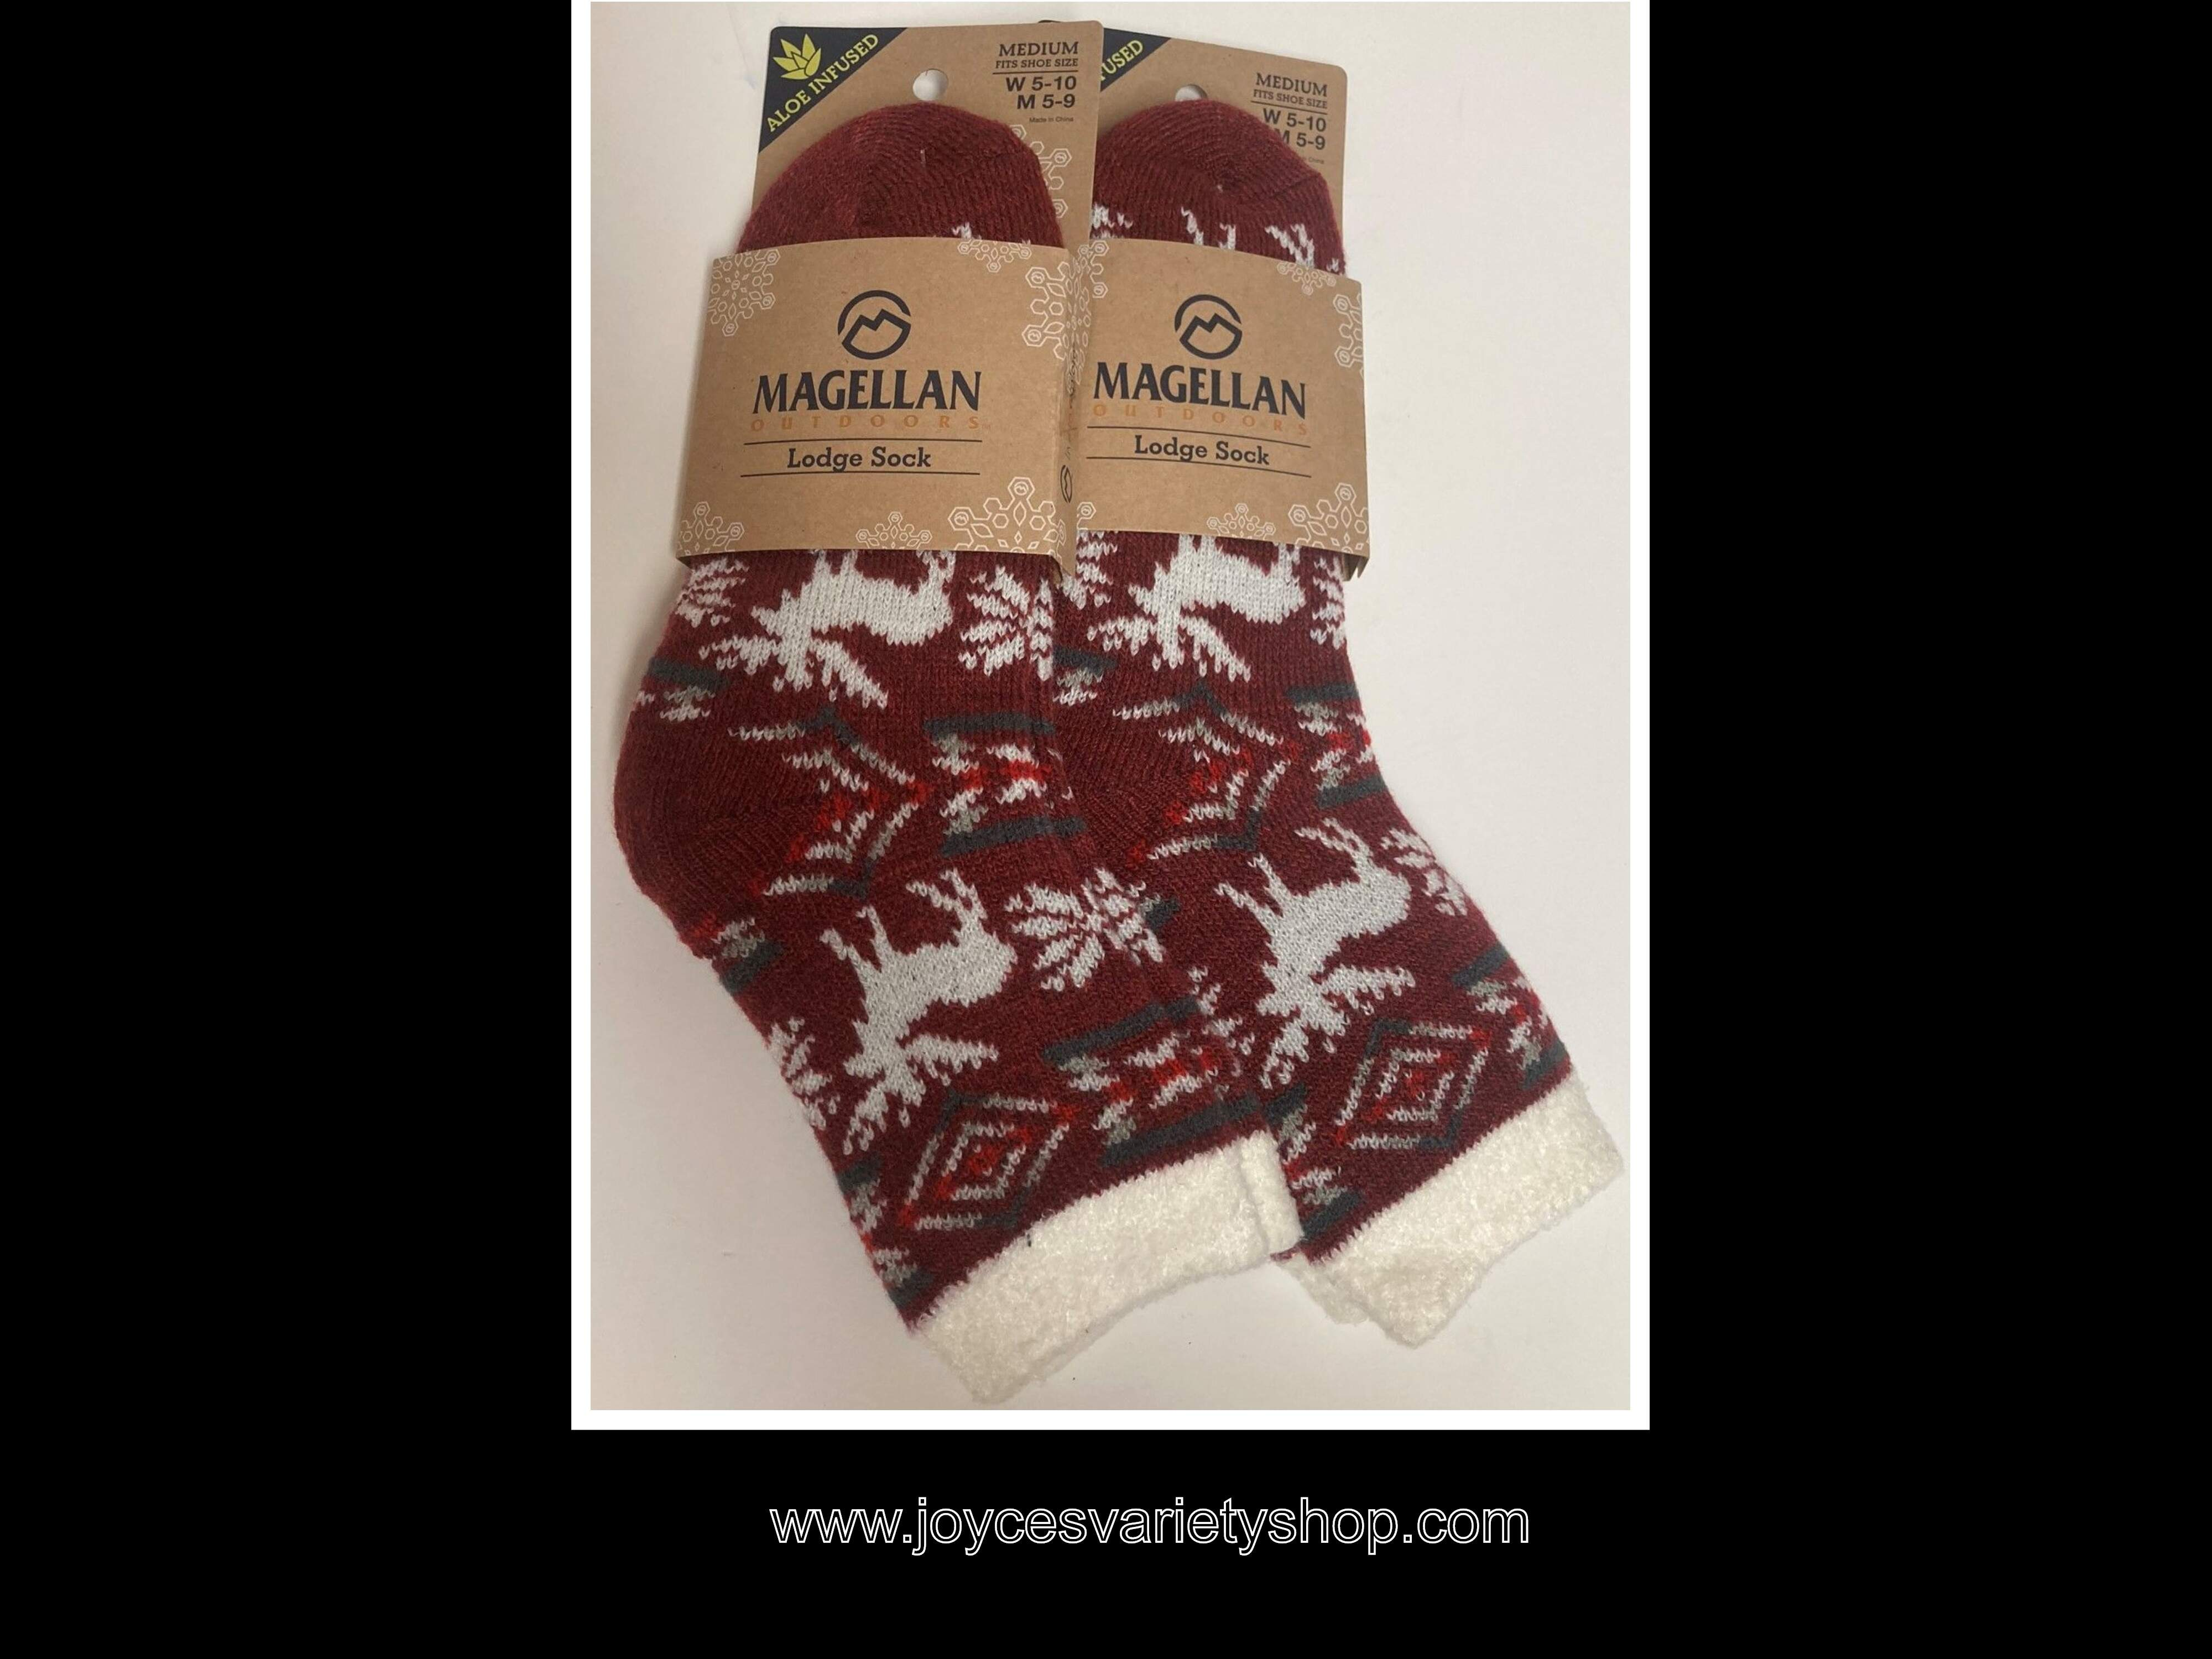 Magellan Outdoor Lodge Socks Two Pair Sz M (Women 5-10) ( Men 5-9)